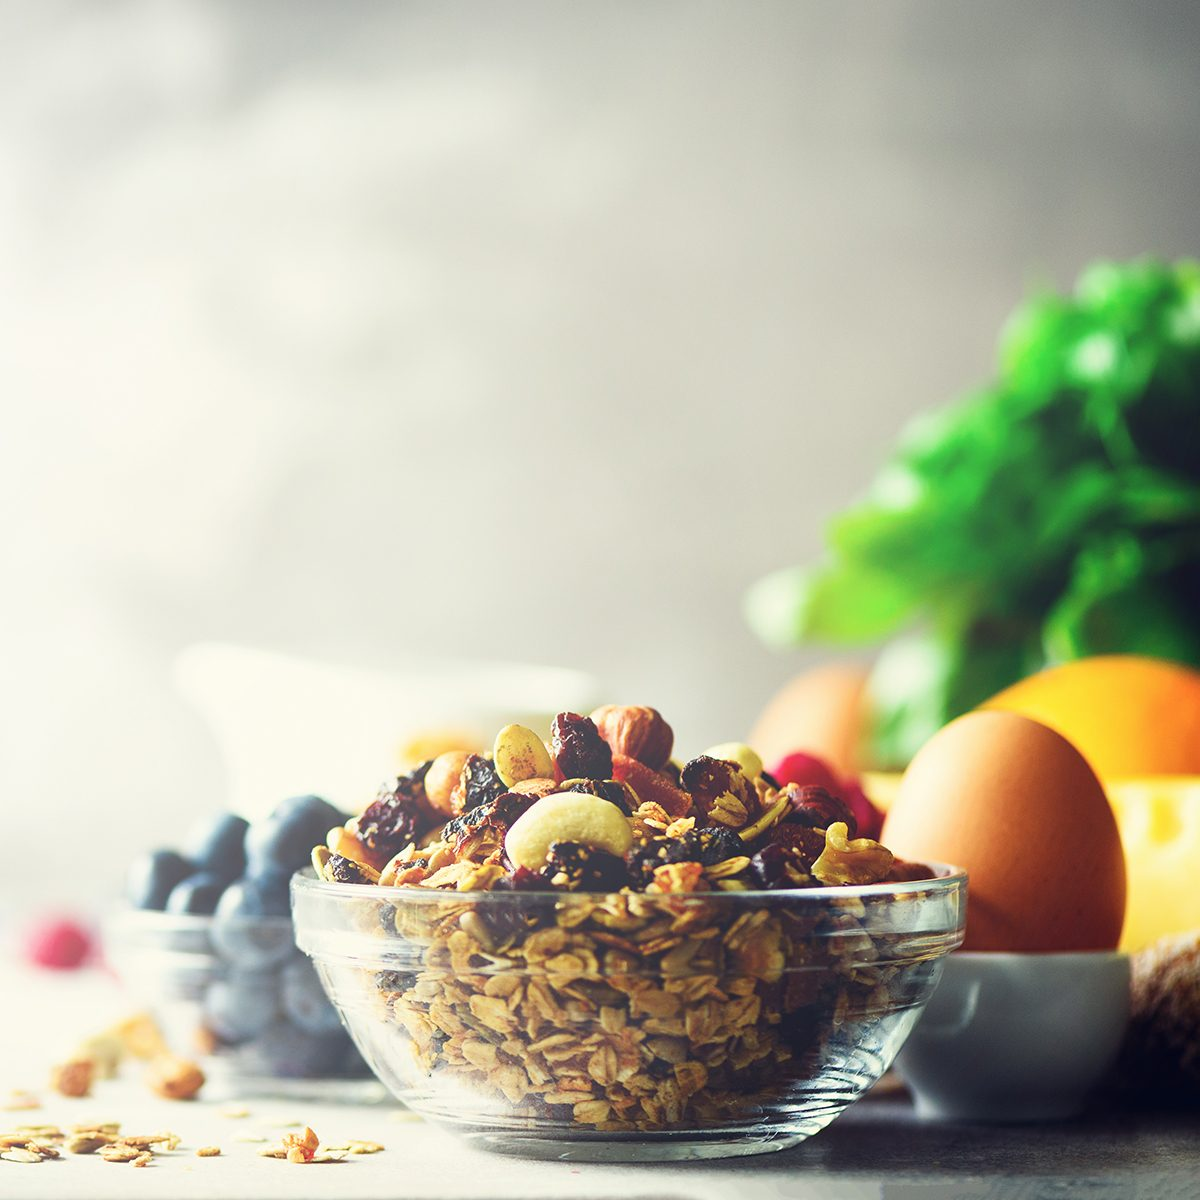 Organic ingredients for healthy lunch - berries, milk, egg, oatmeal on grey concrete background.